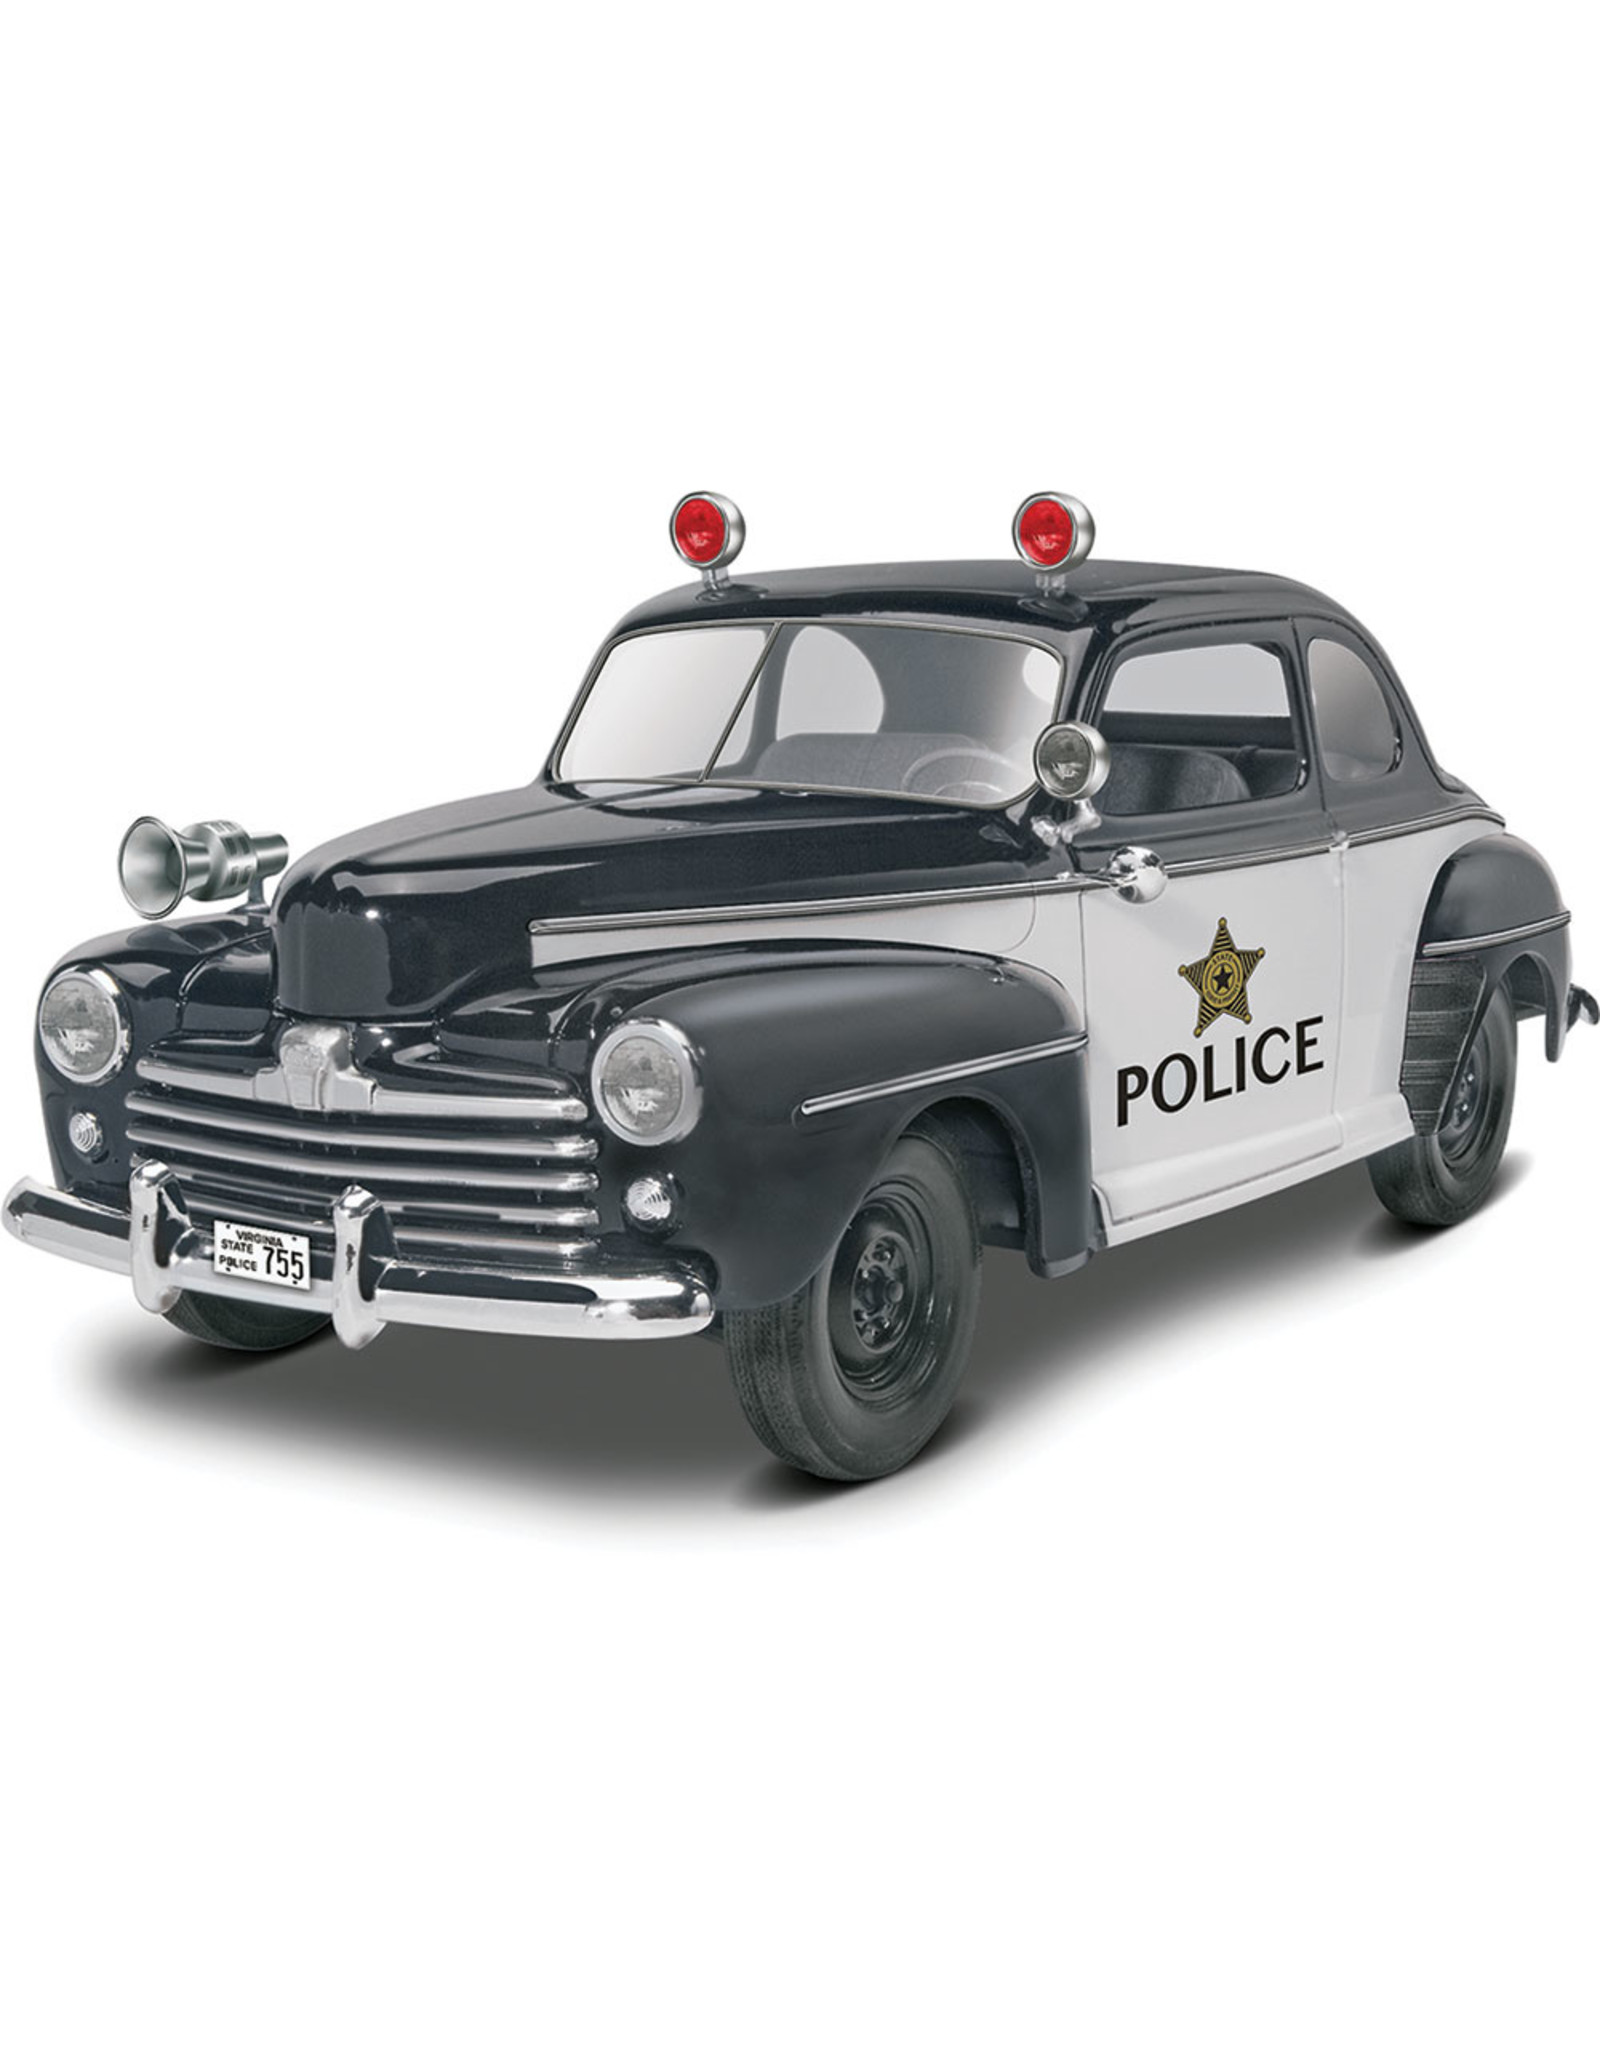 Revell 4318 - '48 Ford Police Coupe 2n1 1/25